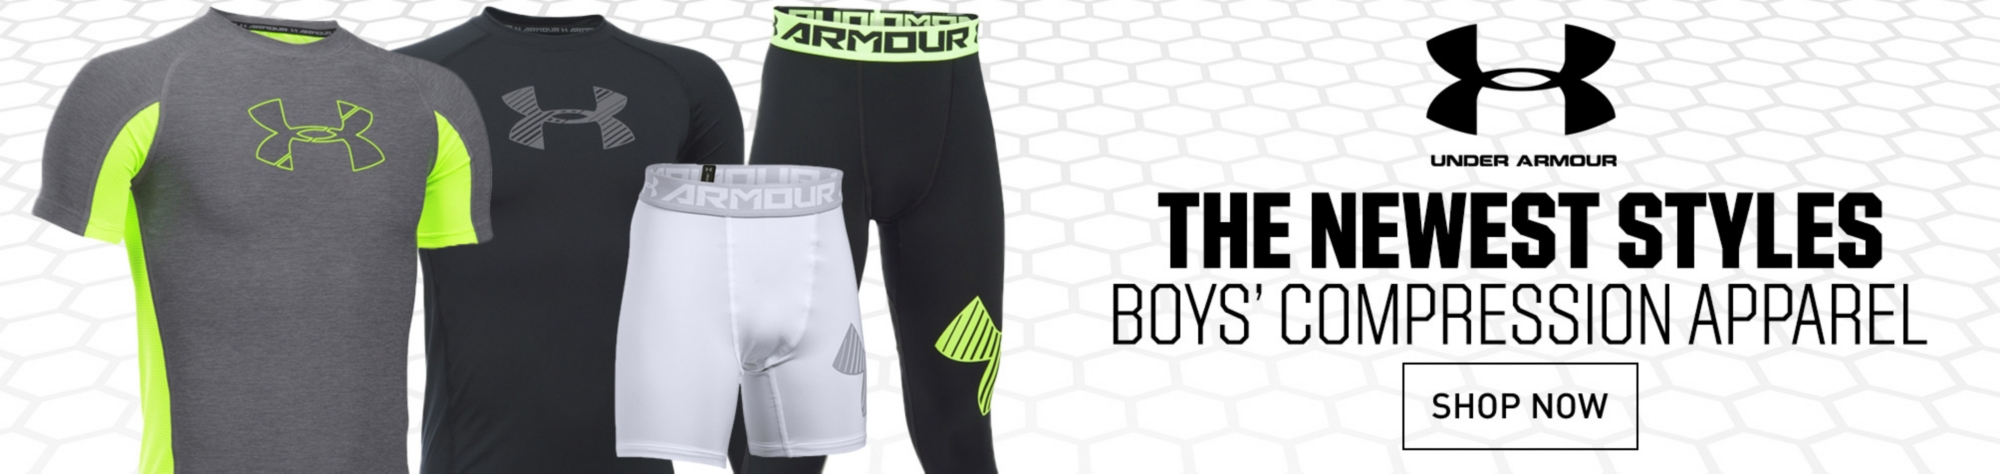 Boys' Compression Apparel - Under Armour